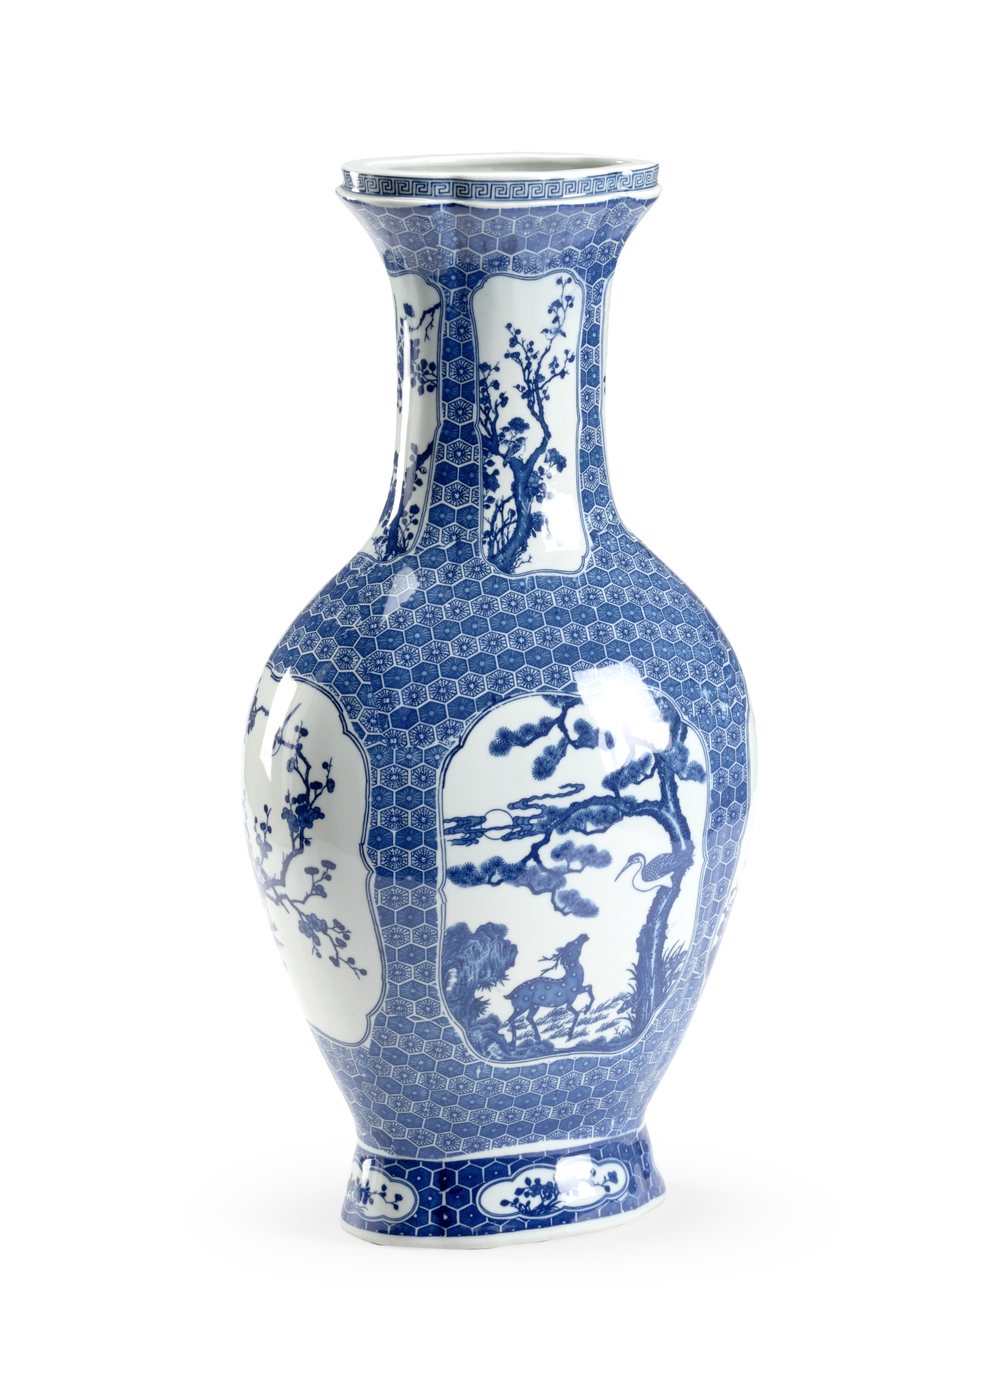 Chelsea House - Blue and White Stag Vase